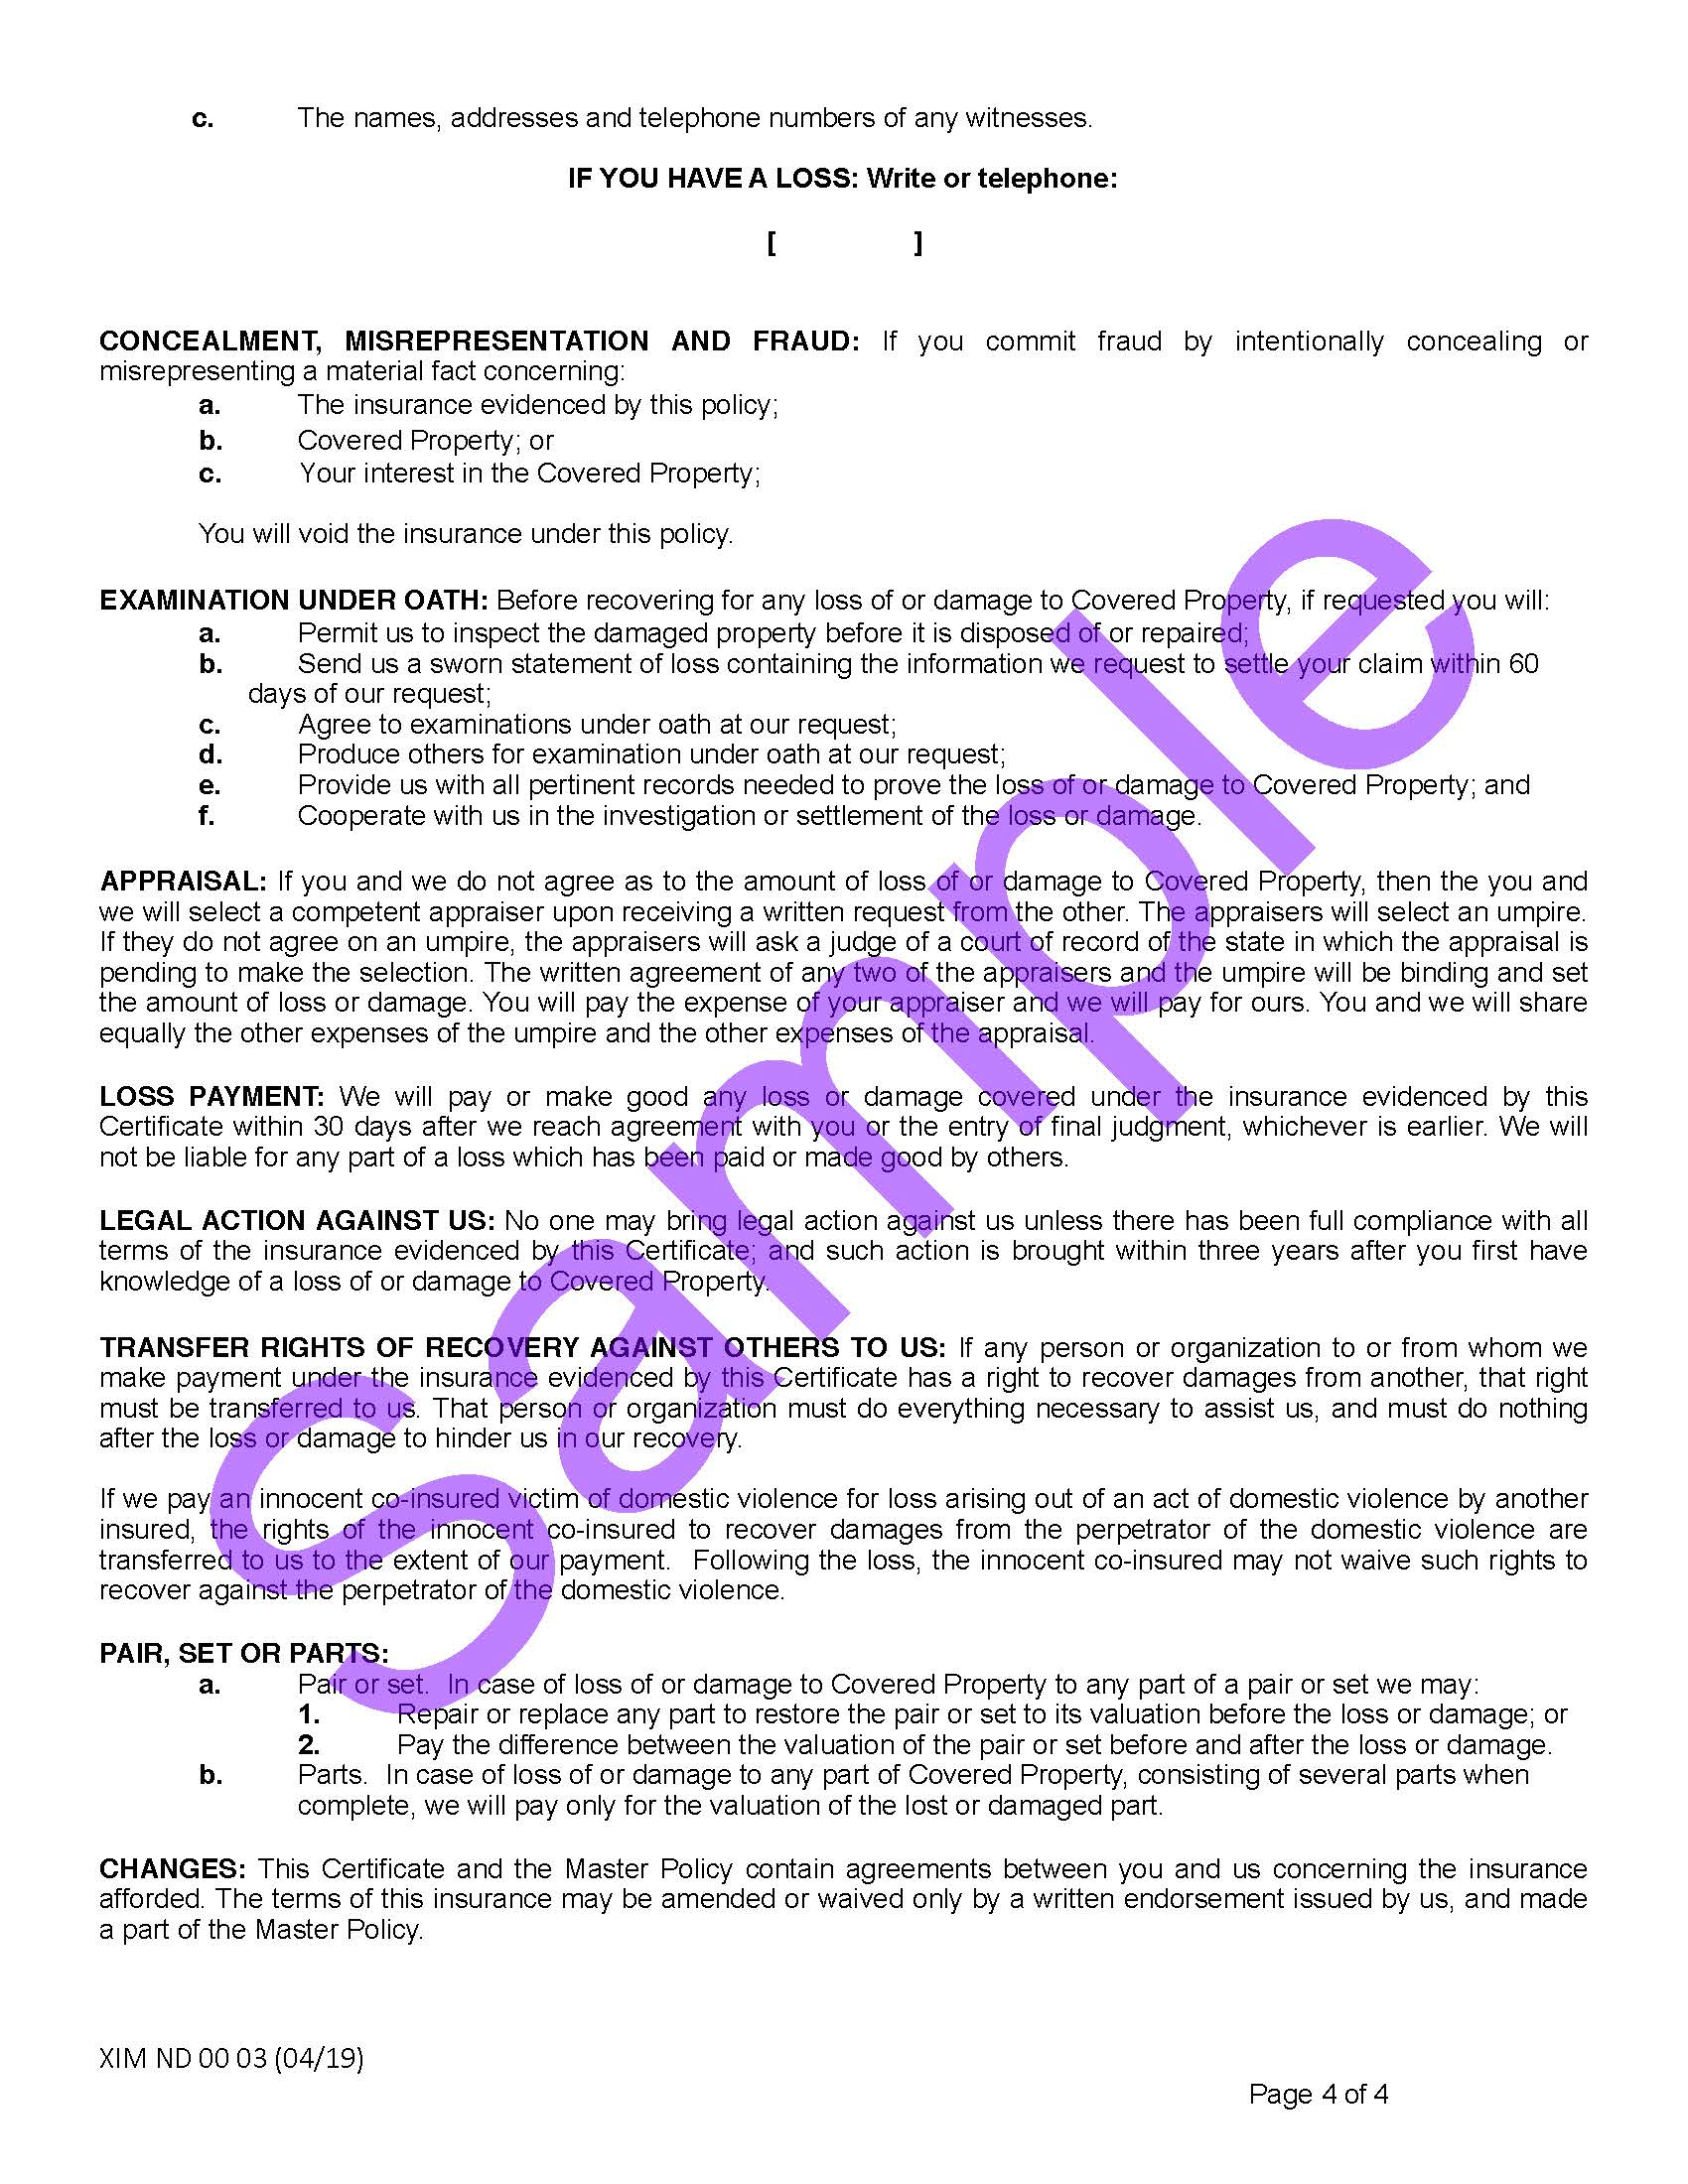 XIM ND 00 03 04 19 North Dakota Certificate of InsuranceSample_Page_4.jpg